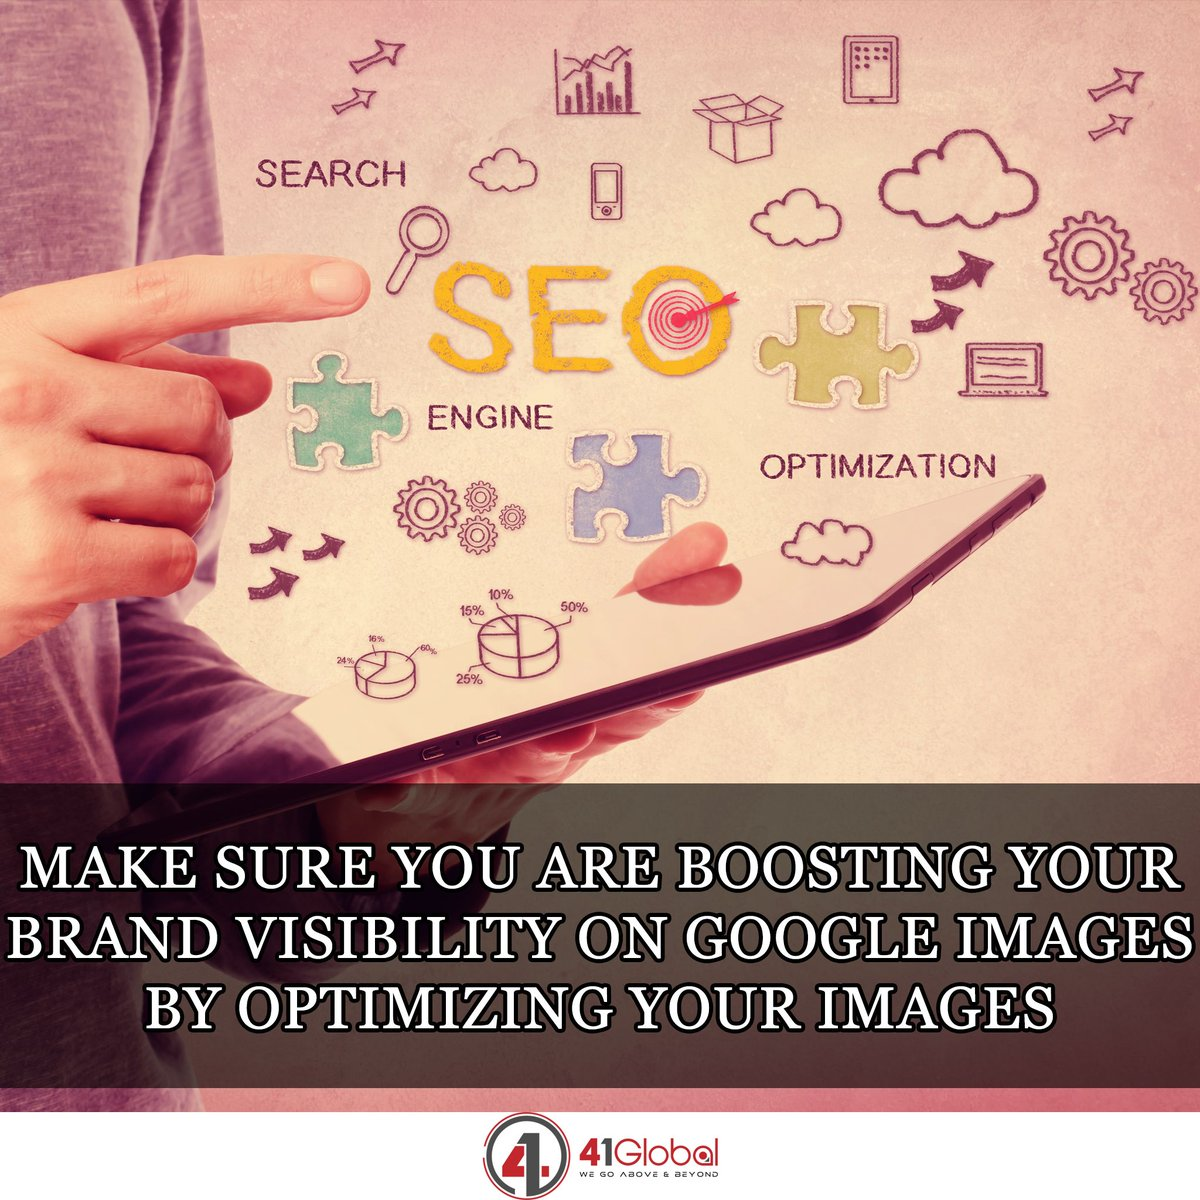 SEO Tip! 😀😉 Image optimization is among the most manageable yet overlooked strategies for SEO #41Global #seo #marketing #website #webdevelopment #websitedesigner #webdesign #webdesigner #webdevelopment #mobilefirst #google #code #techie #tech #developer #marketingtips